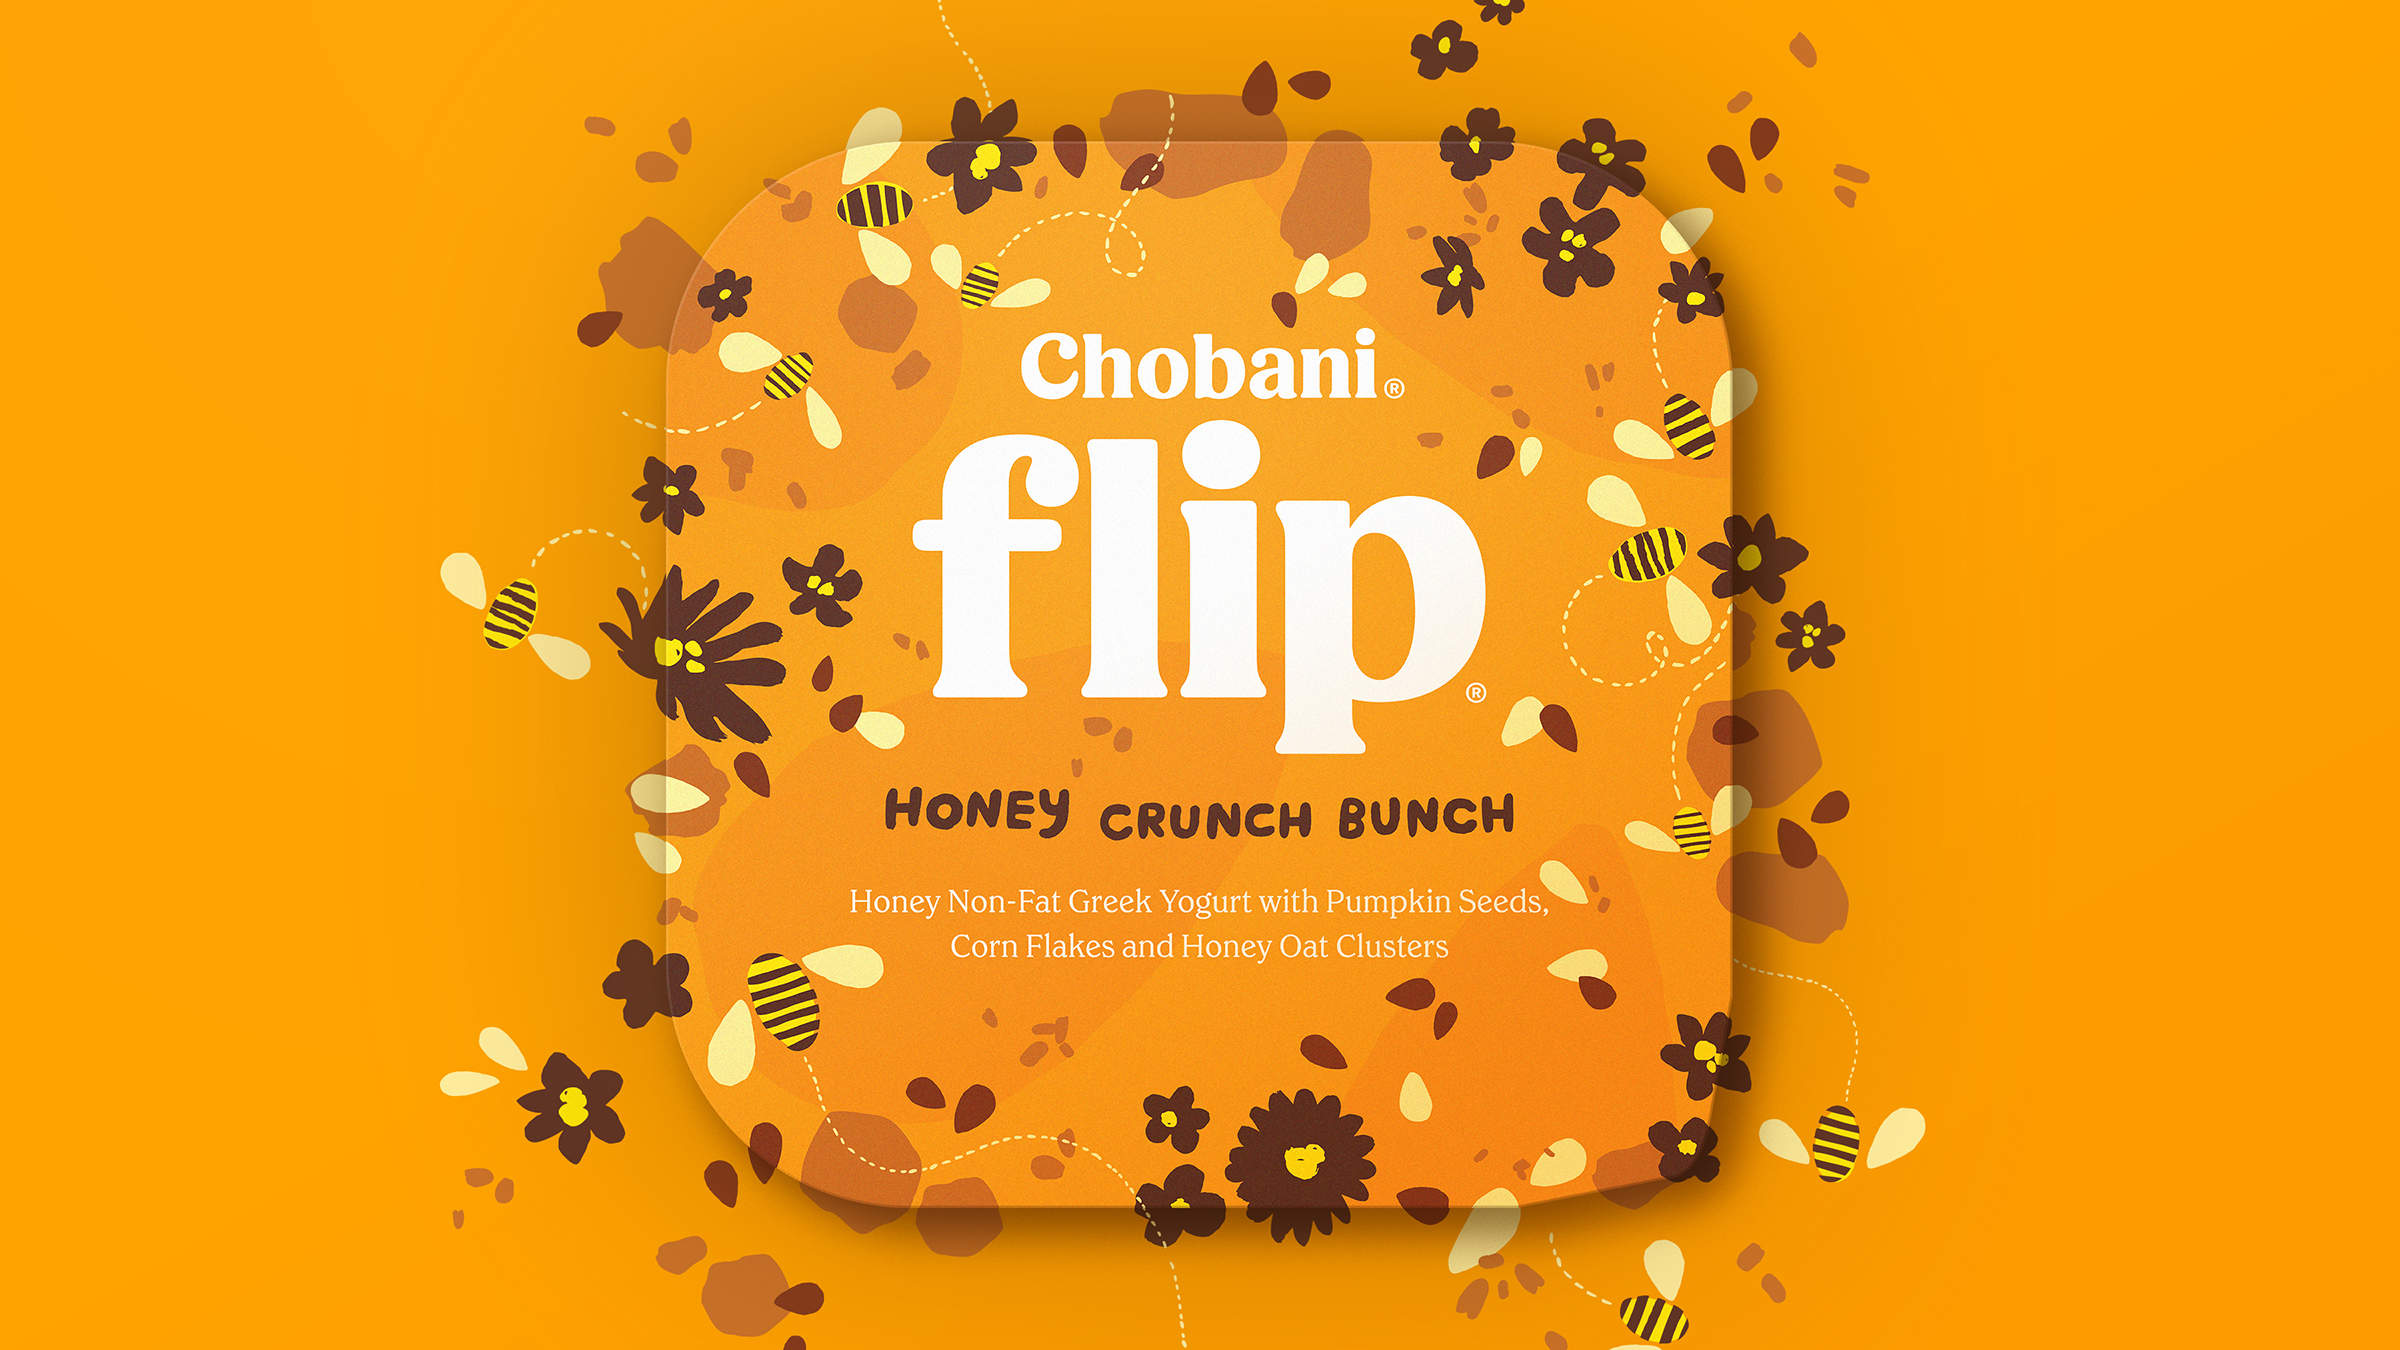 Chobani® Flip® Honey Crunch Bunch (Morning)